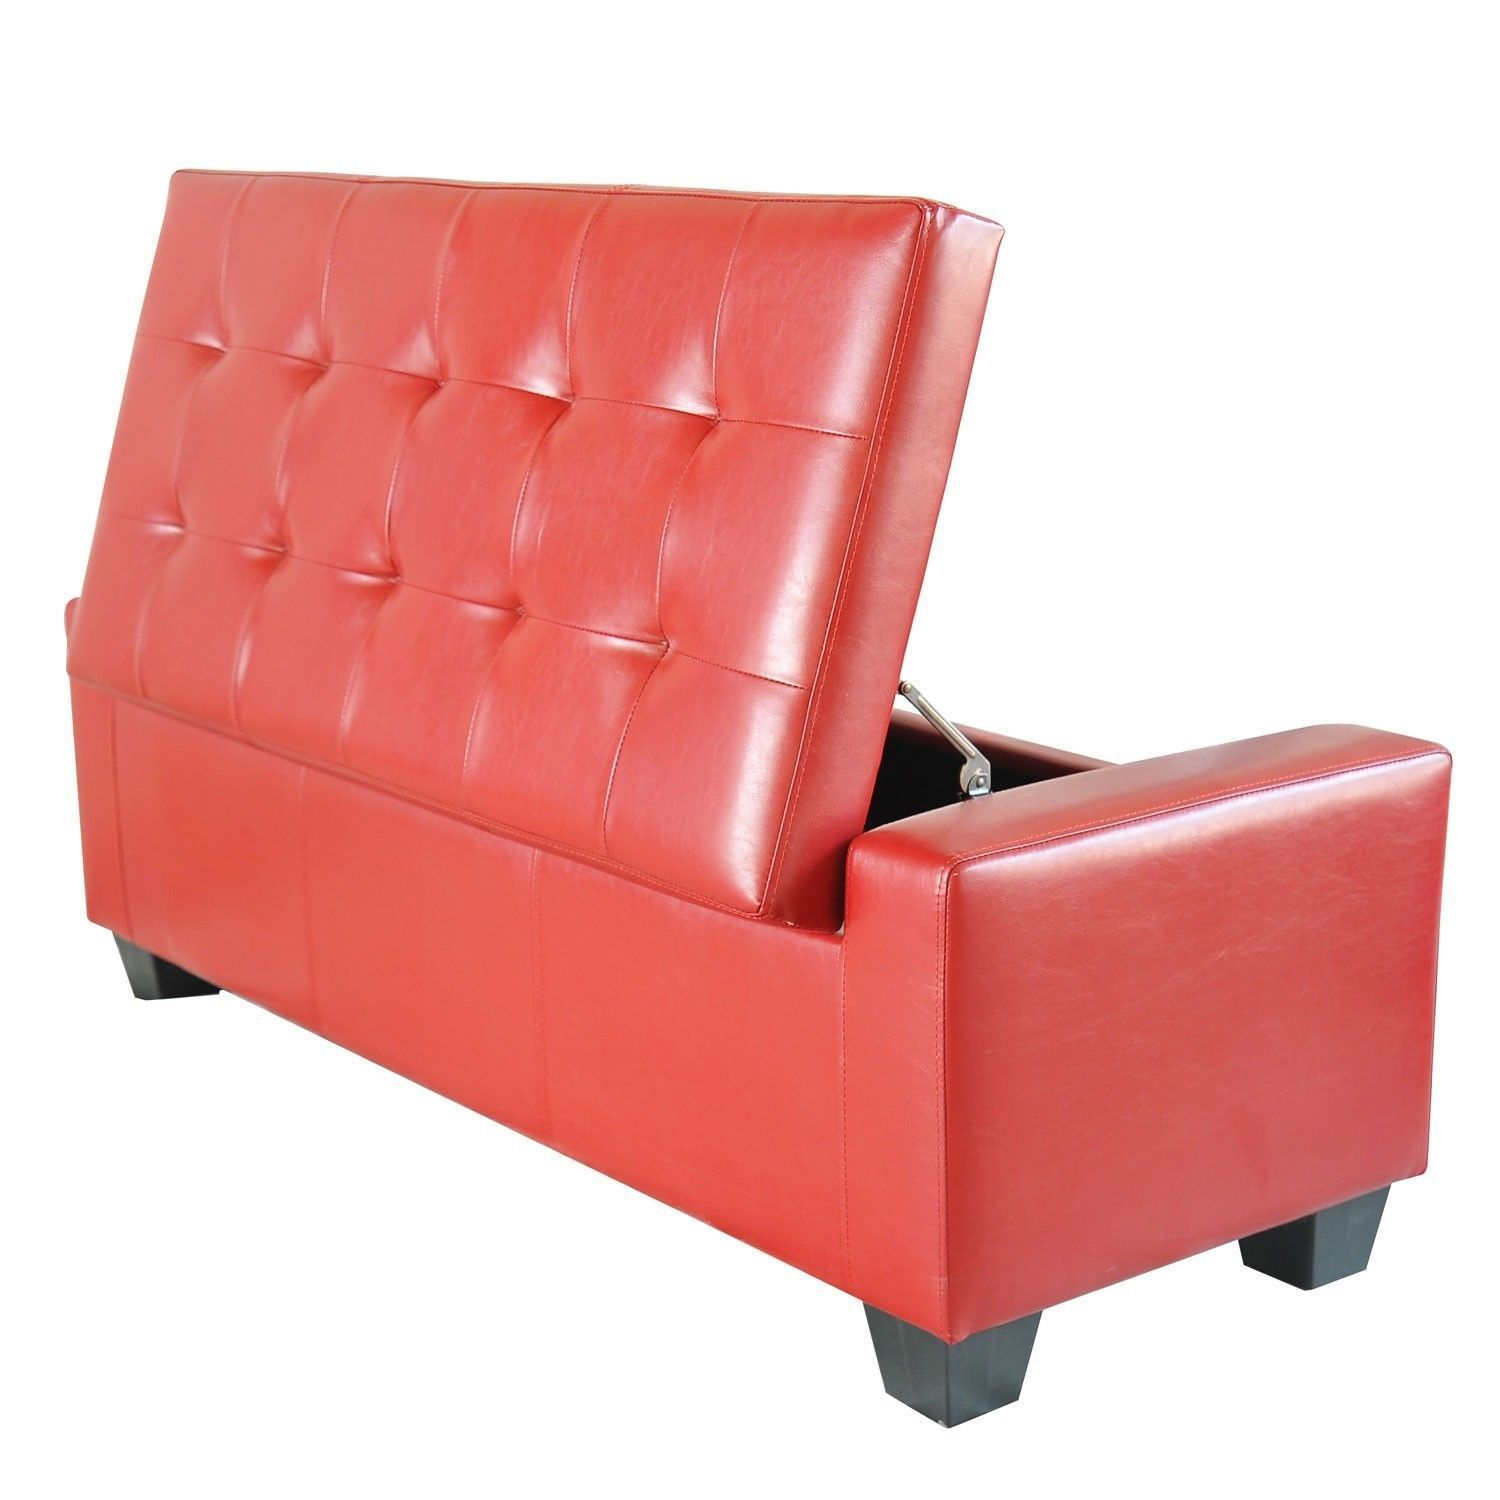 overstock orange red shipping homepop storage cranberry home free garden bench tufted product linen today